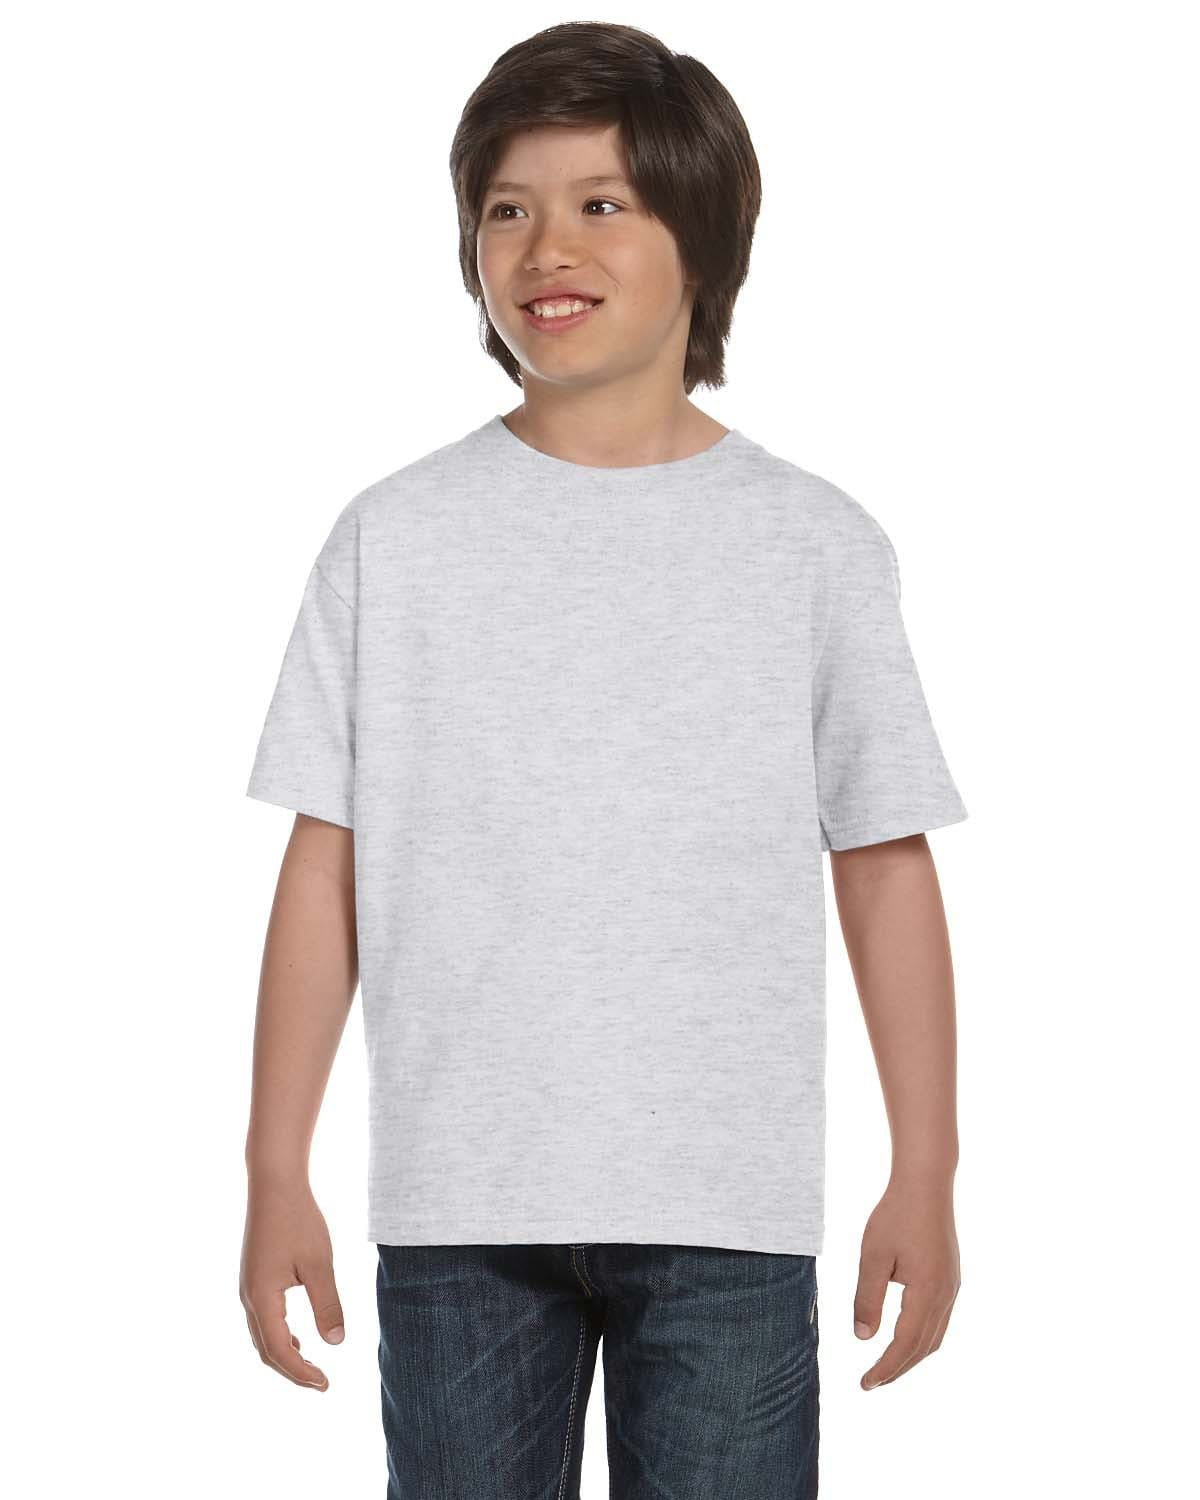 g800b-youth-5-5-oz-50-50-t-shirt-large-xl-Large-ASH GREY-Oasispromos